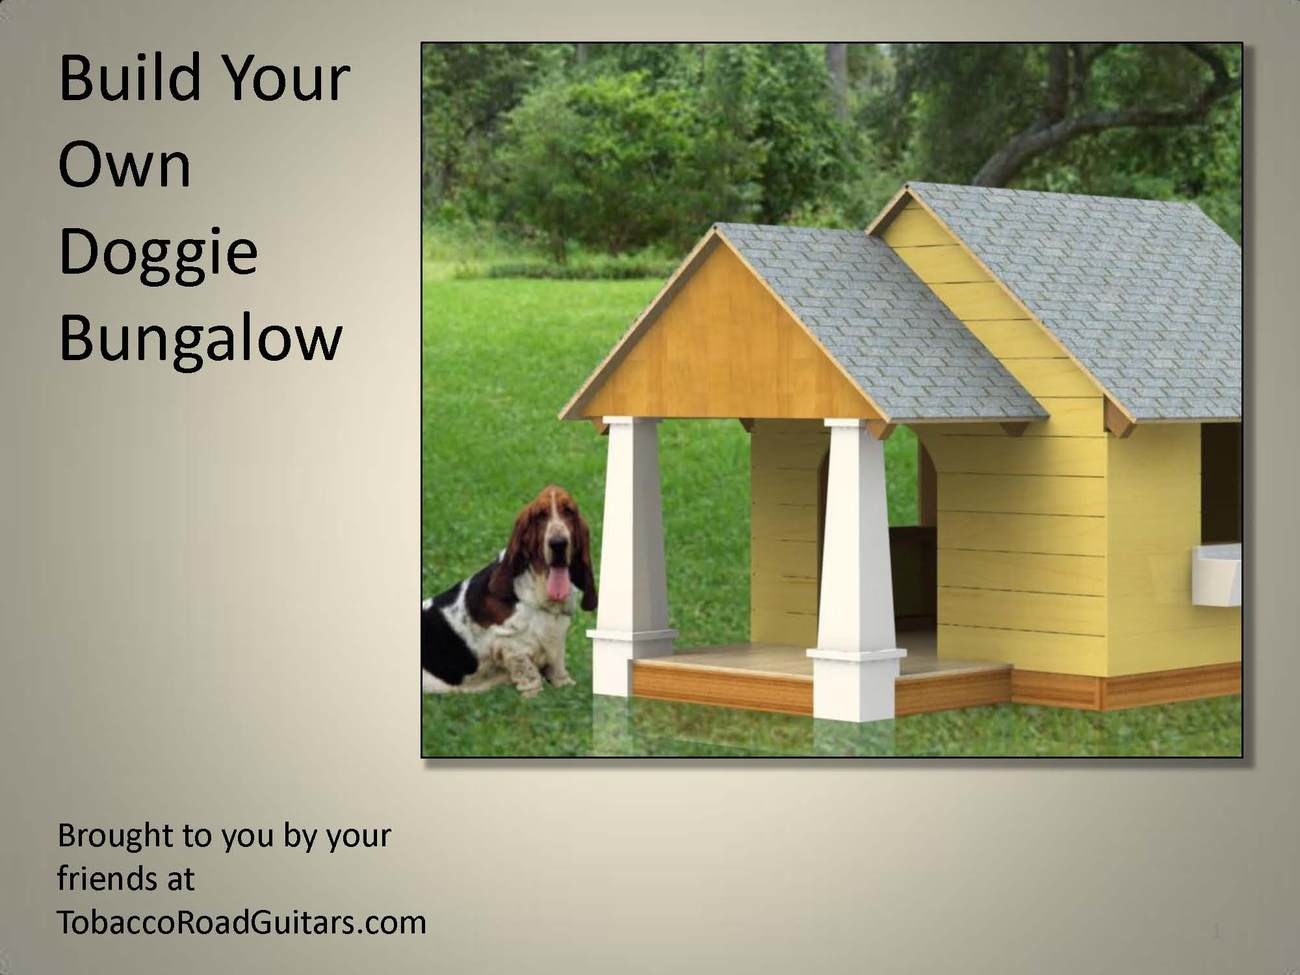 Dog house bungalow plans and instructions dog houses for Build your own bungalow